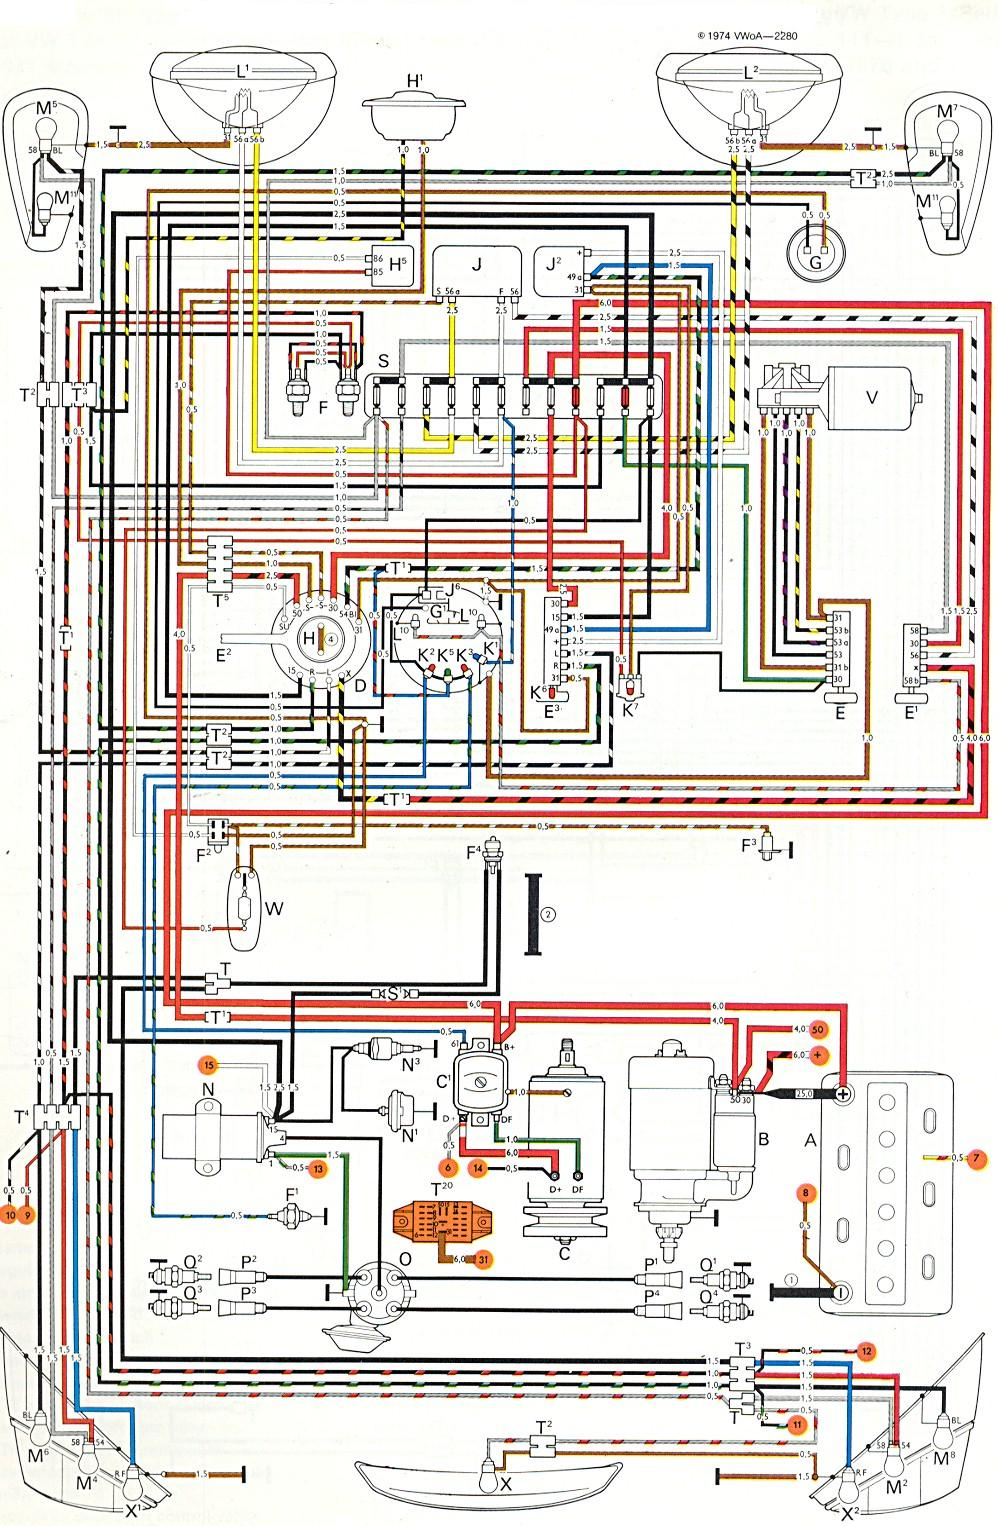 1972 Vw Bug Wiring Diagram Data Generator 72 For You 1971